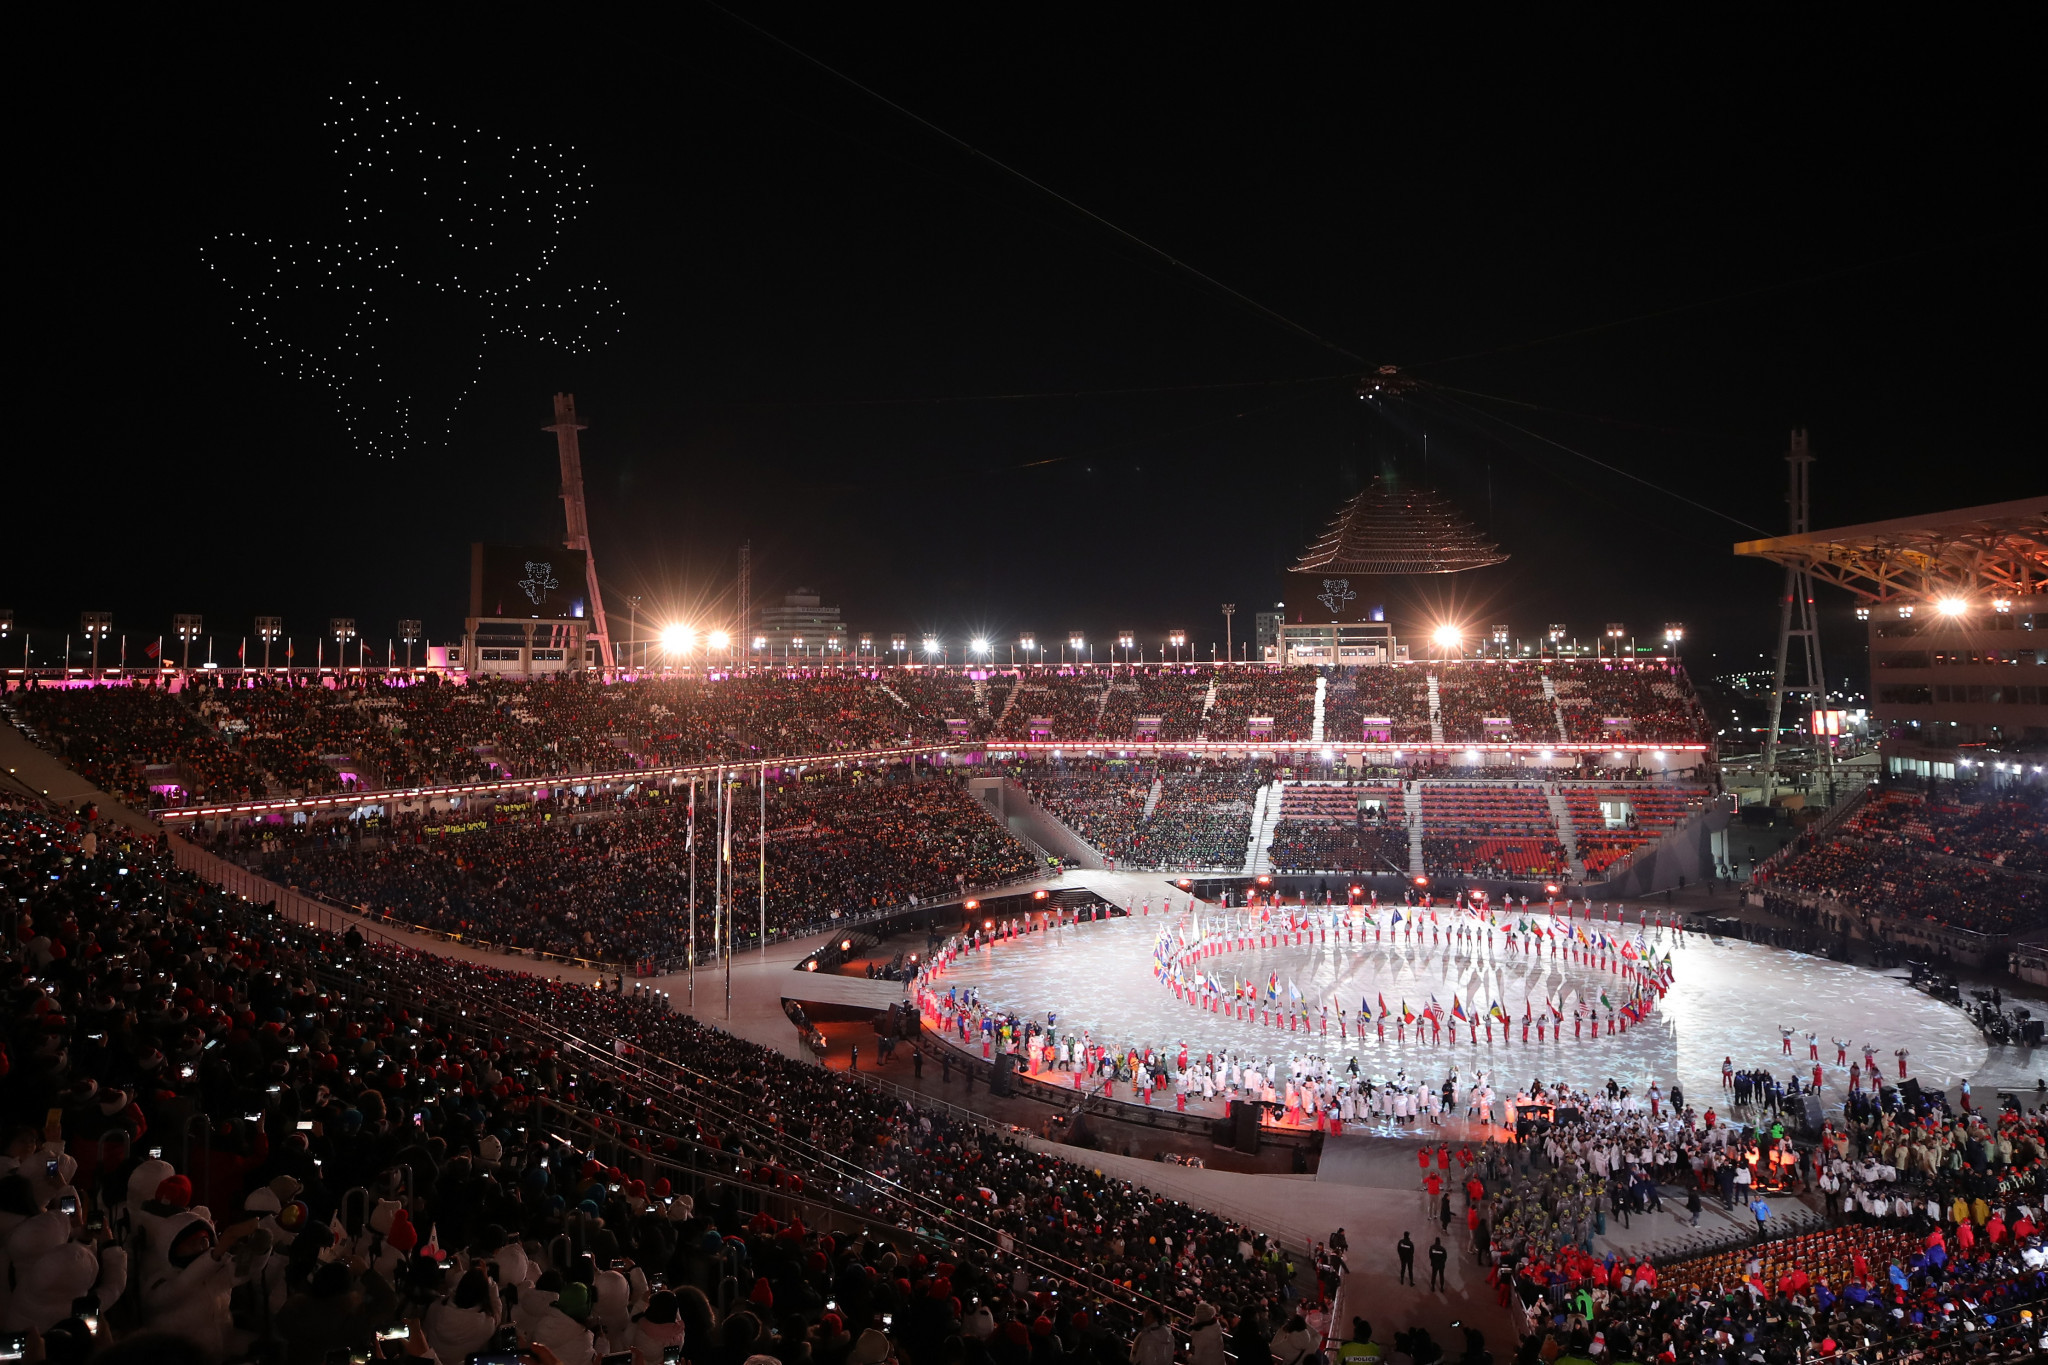 Russian hackers allegedly targeted the Opening Ceremony of Pyeongchang 2018 as revenge against the decision by the International Olympic Committee not to allow the country to compete under its own flag ©Getty Images